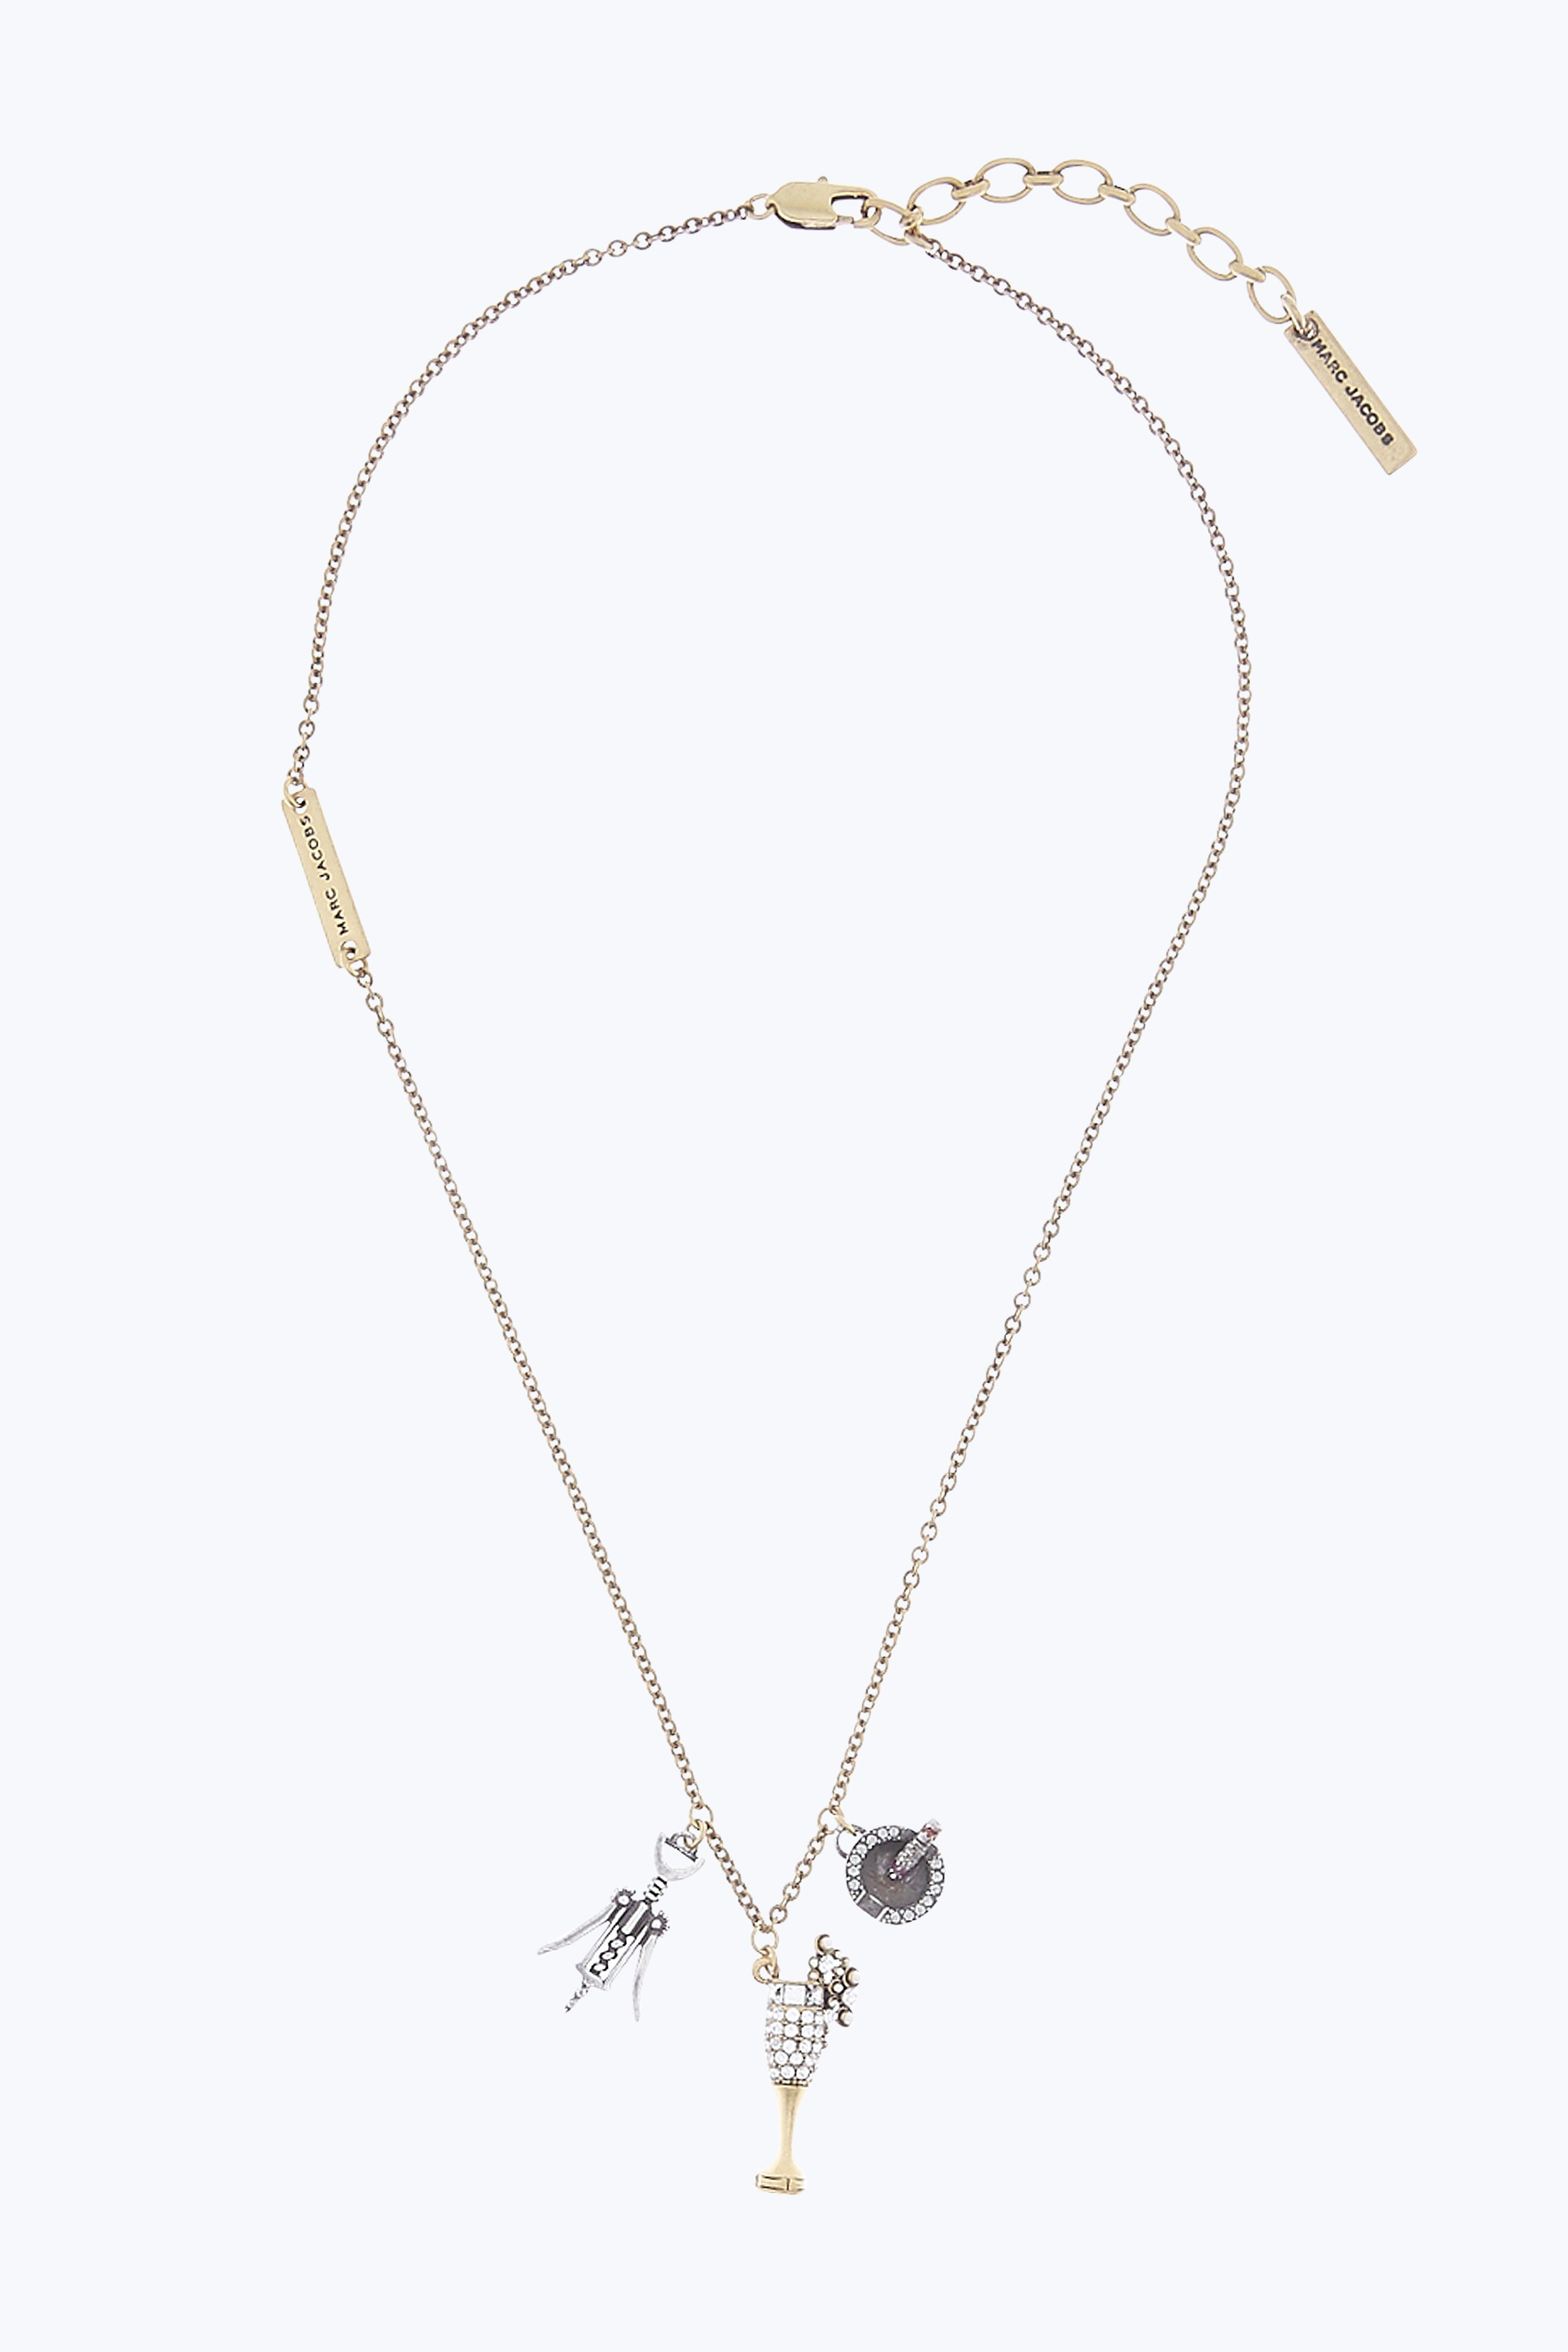 CHAMPAGNE PARTY NECKLACE